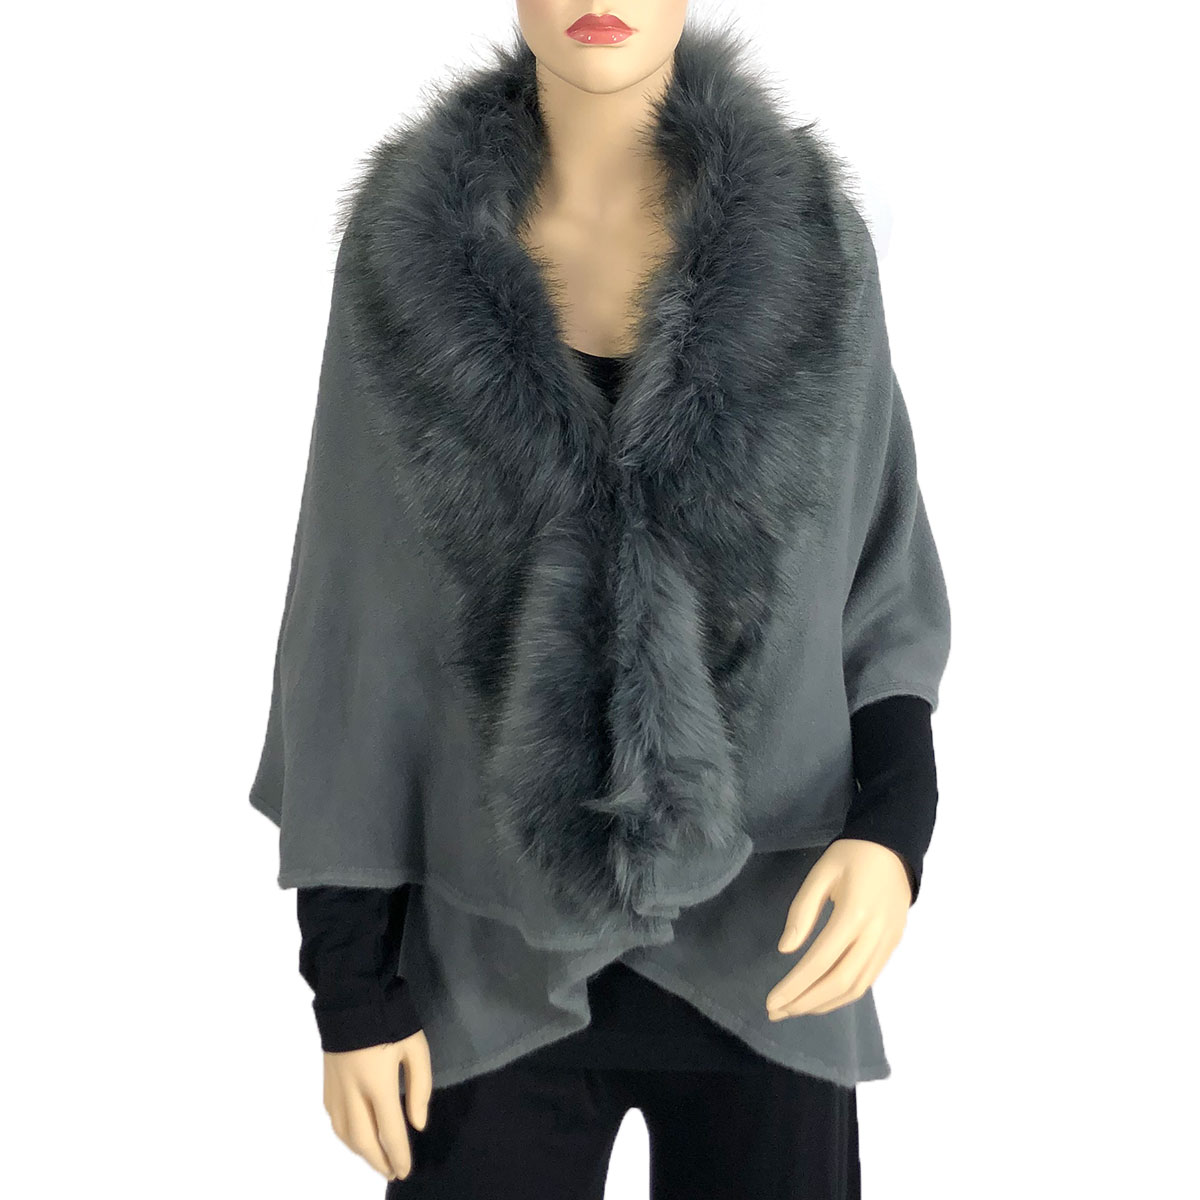 Cape Vests - Solid w/ Faux Fox Fur 93B9 - Grey